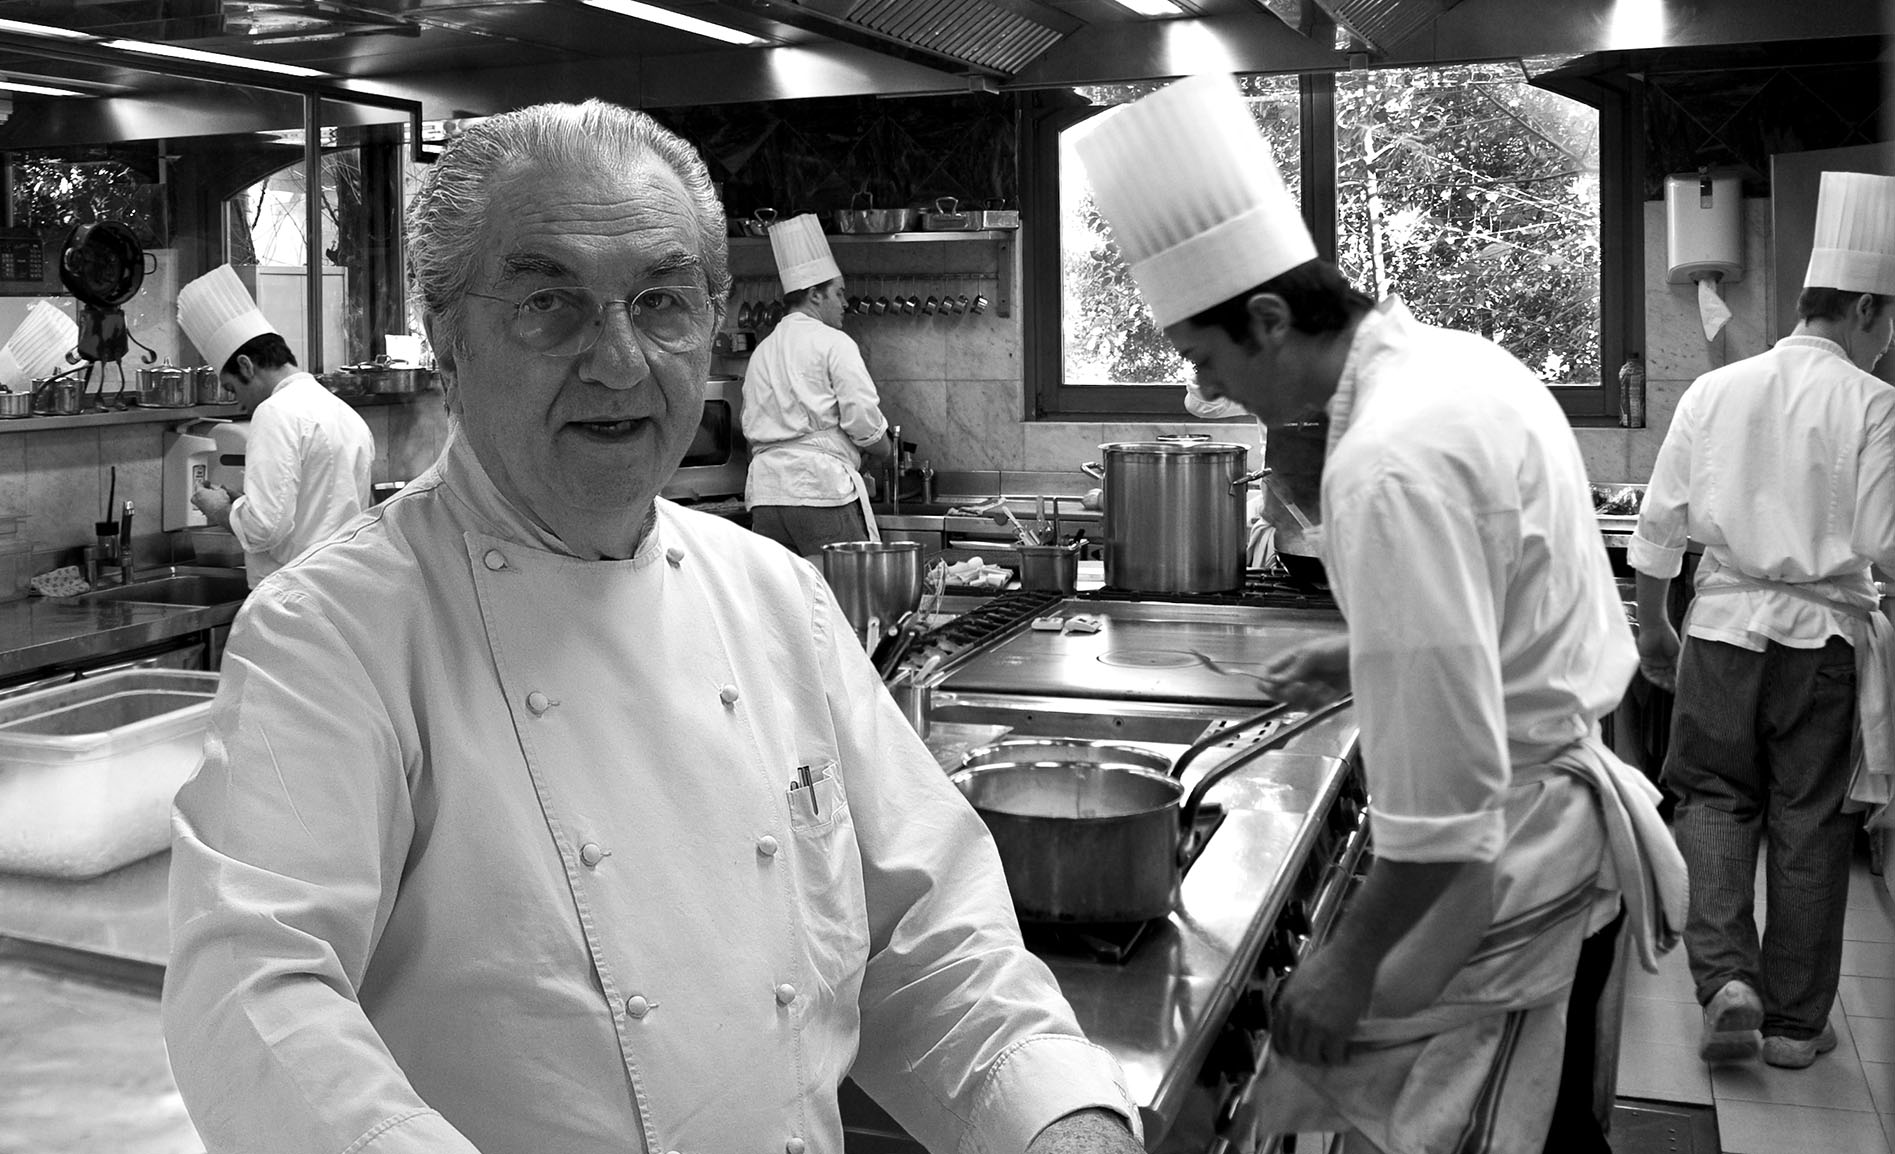 Gualtiero Marchesi e La Grande Cucina Italiana World Tour